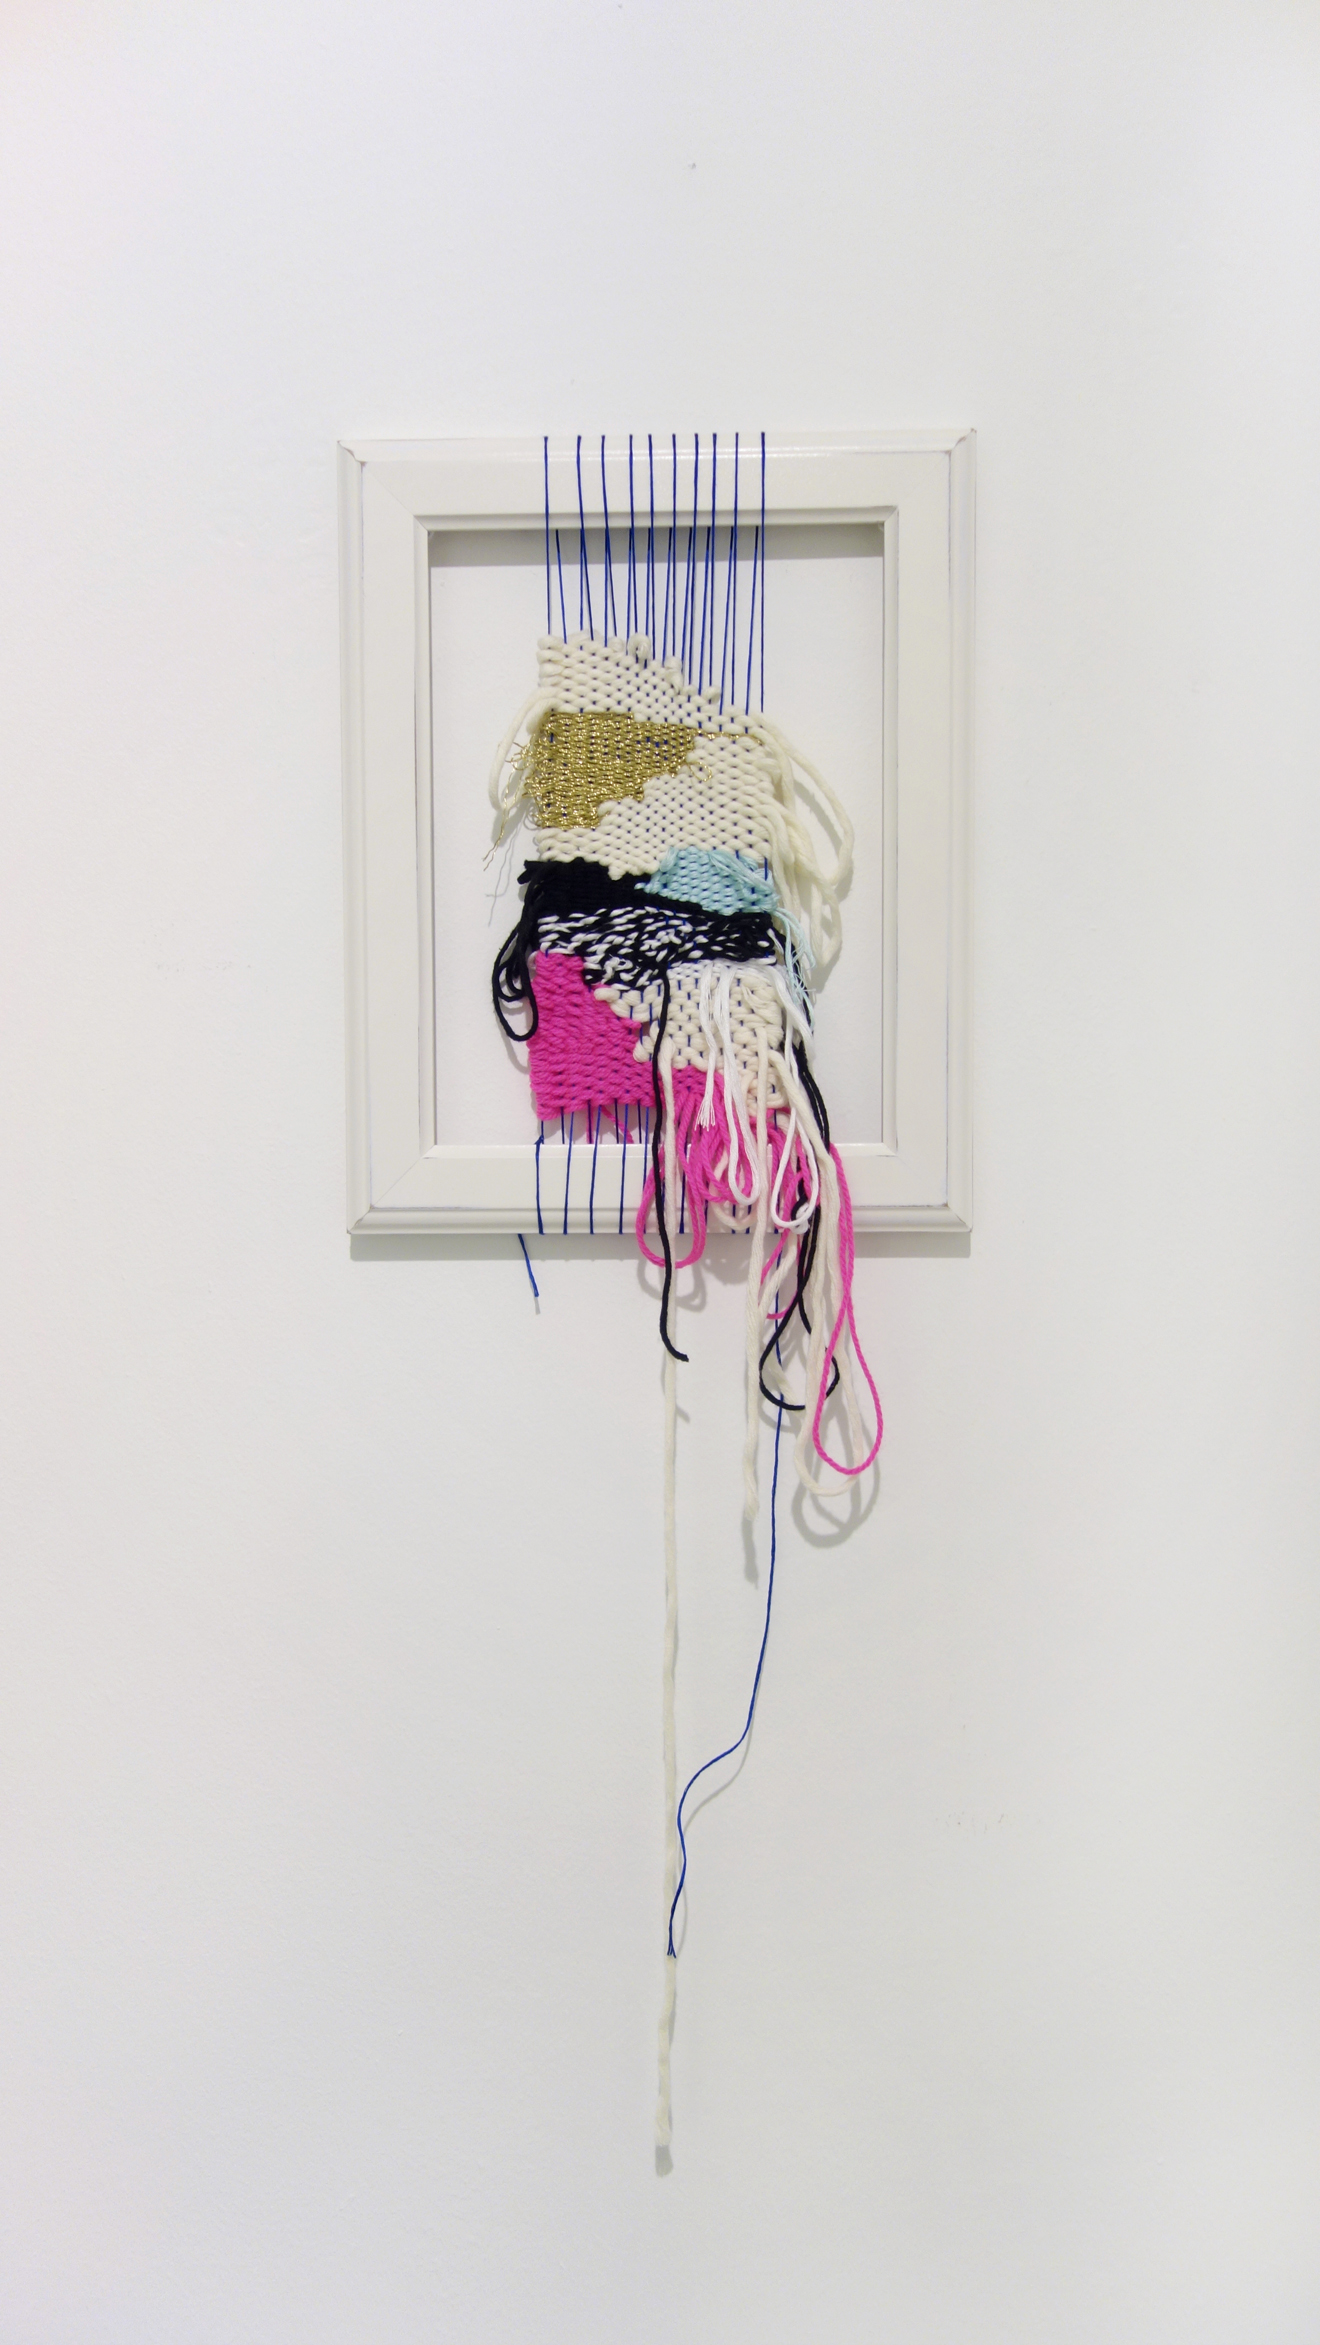 Izziyana Suhaimi, What It Could Otherwise Be, 2015, Cotton, acrylic and polyester thread woven on found frame, H66 x W24 cm.jpg